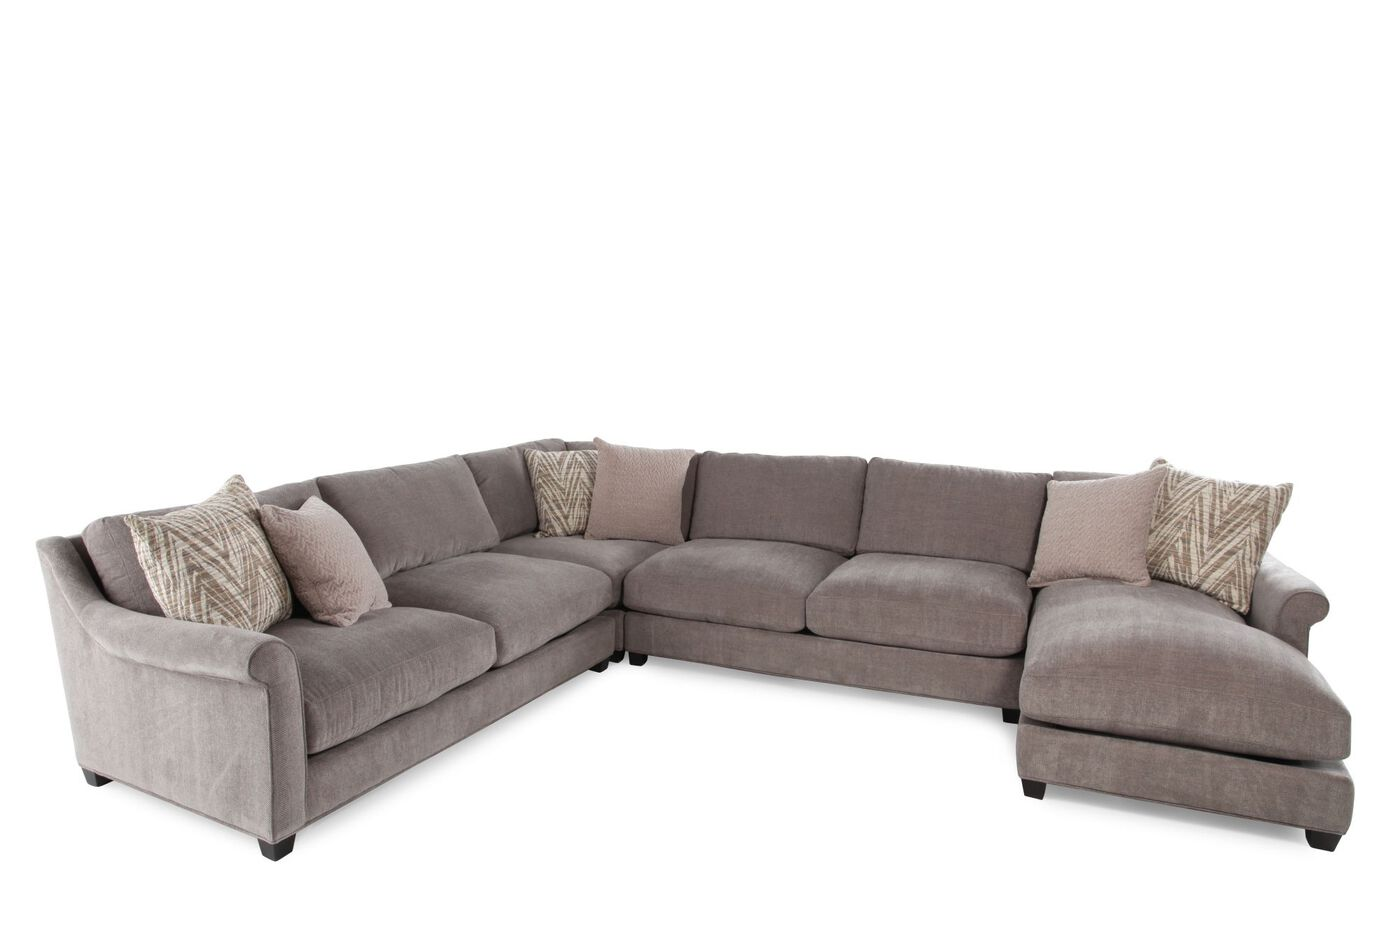 Four Piece Microfiber Sectional In Milk Chocolate Mathis